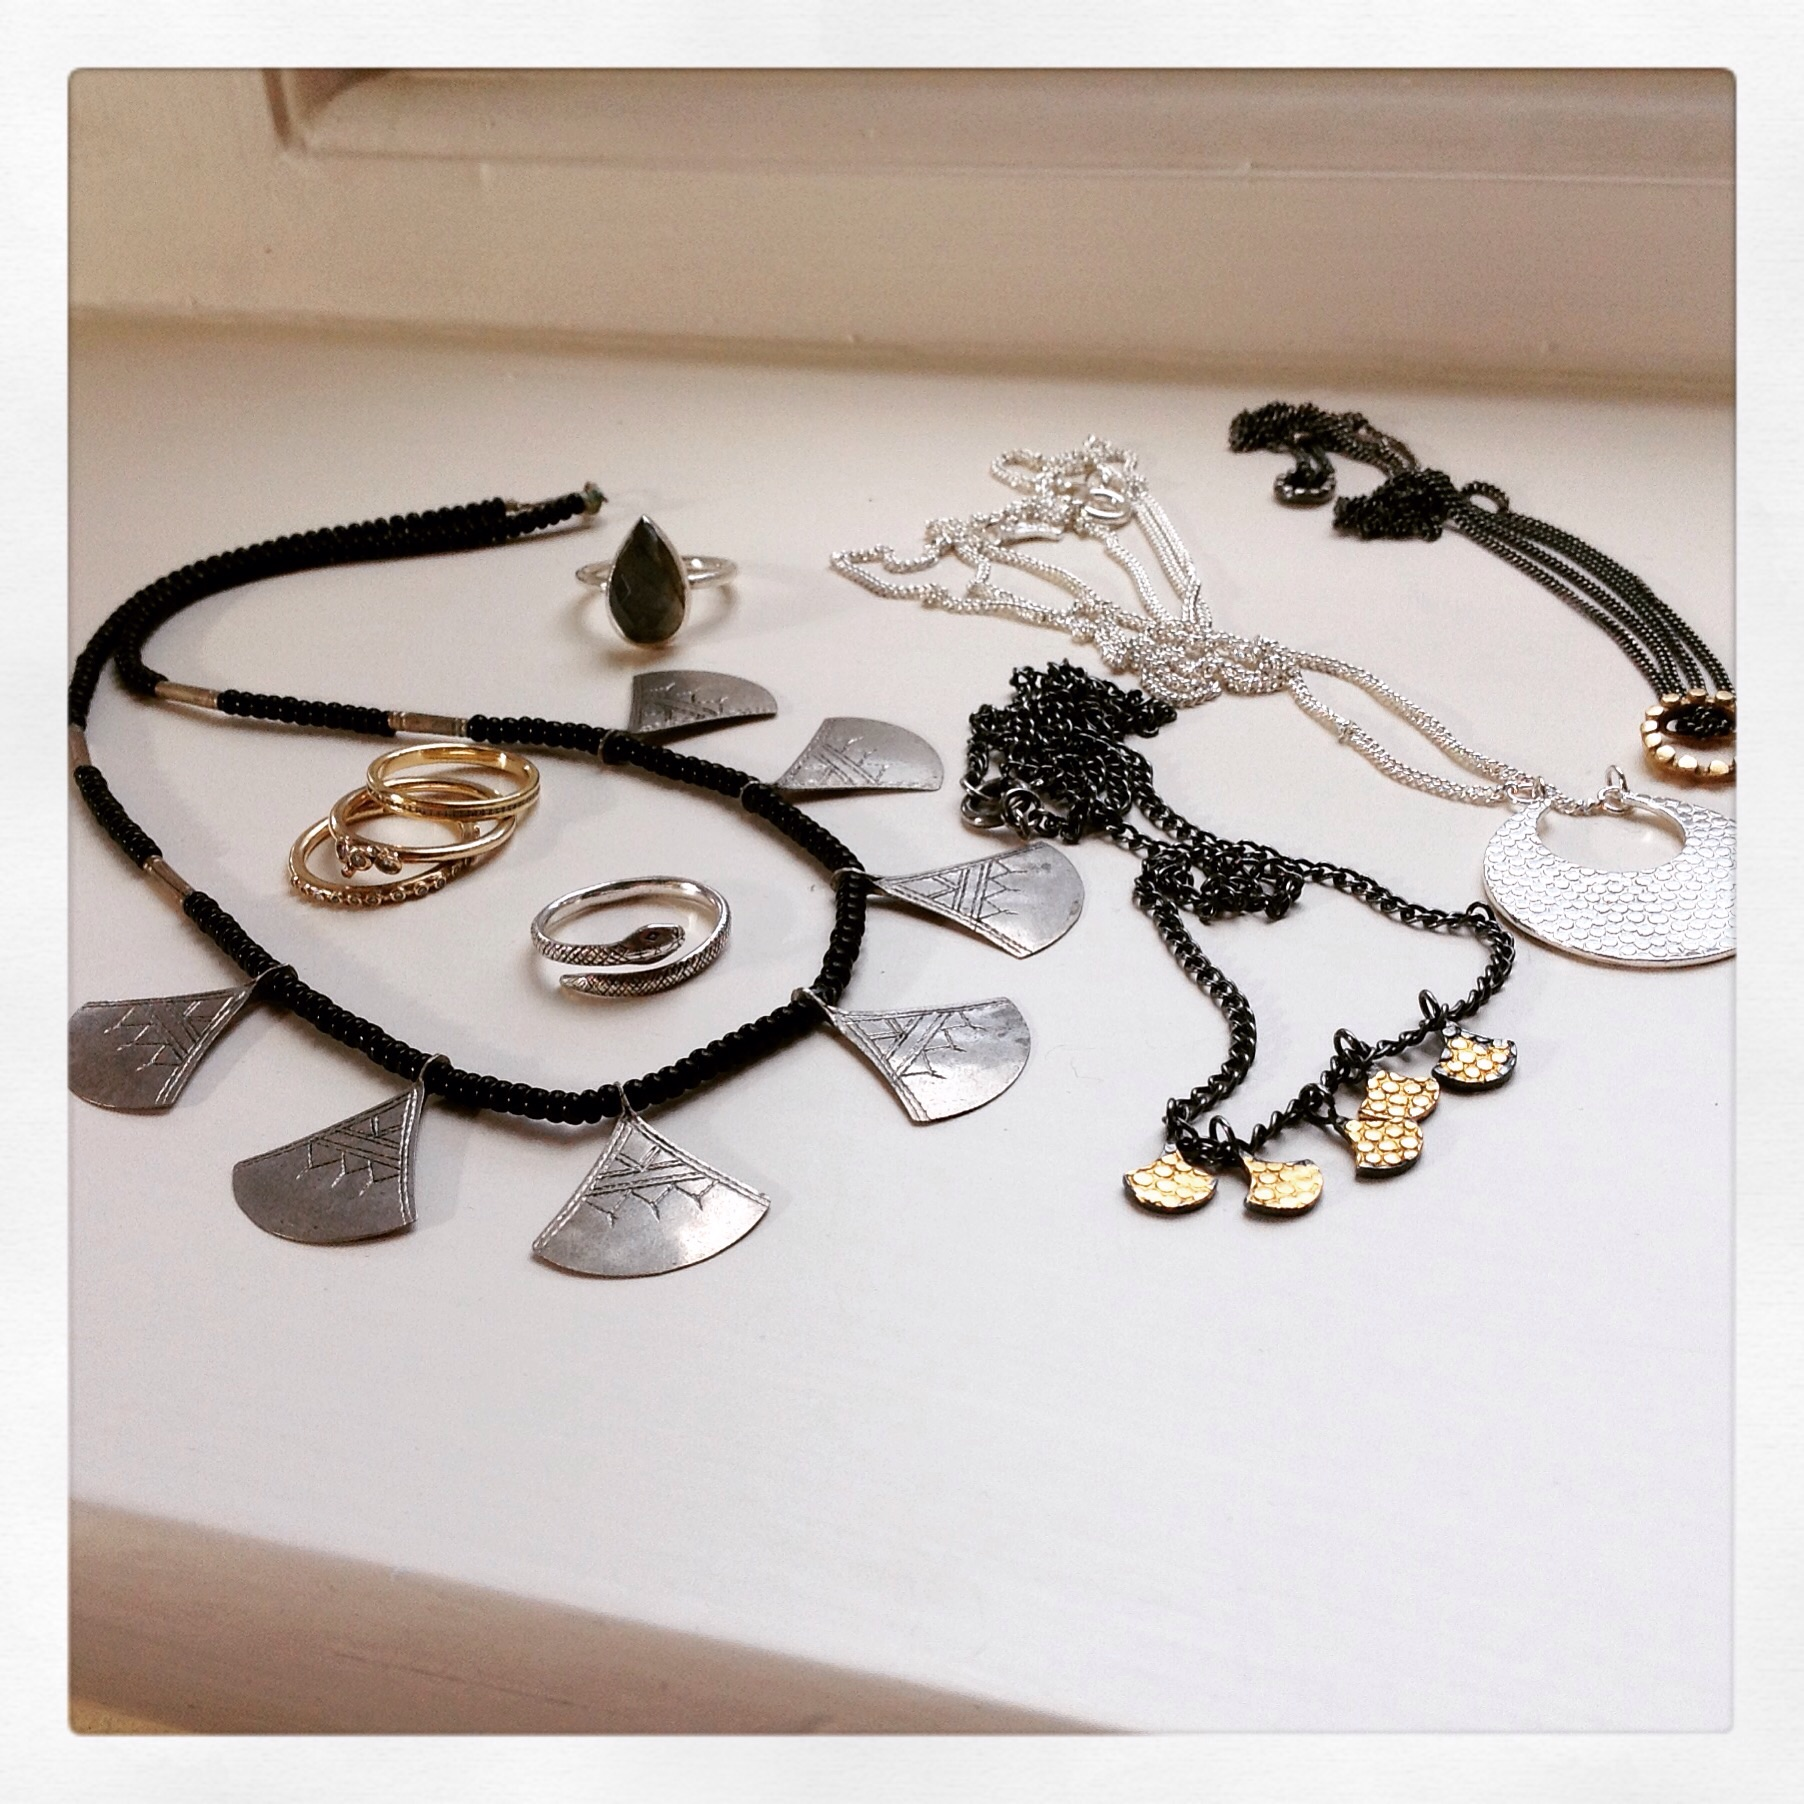 A jewellers' jewellery collection.